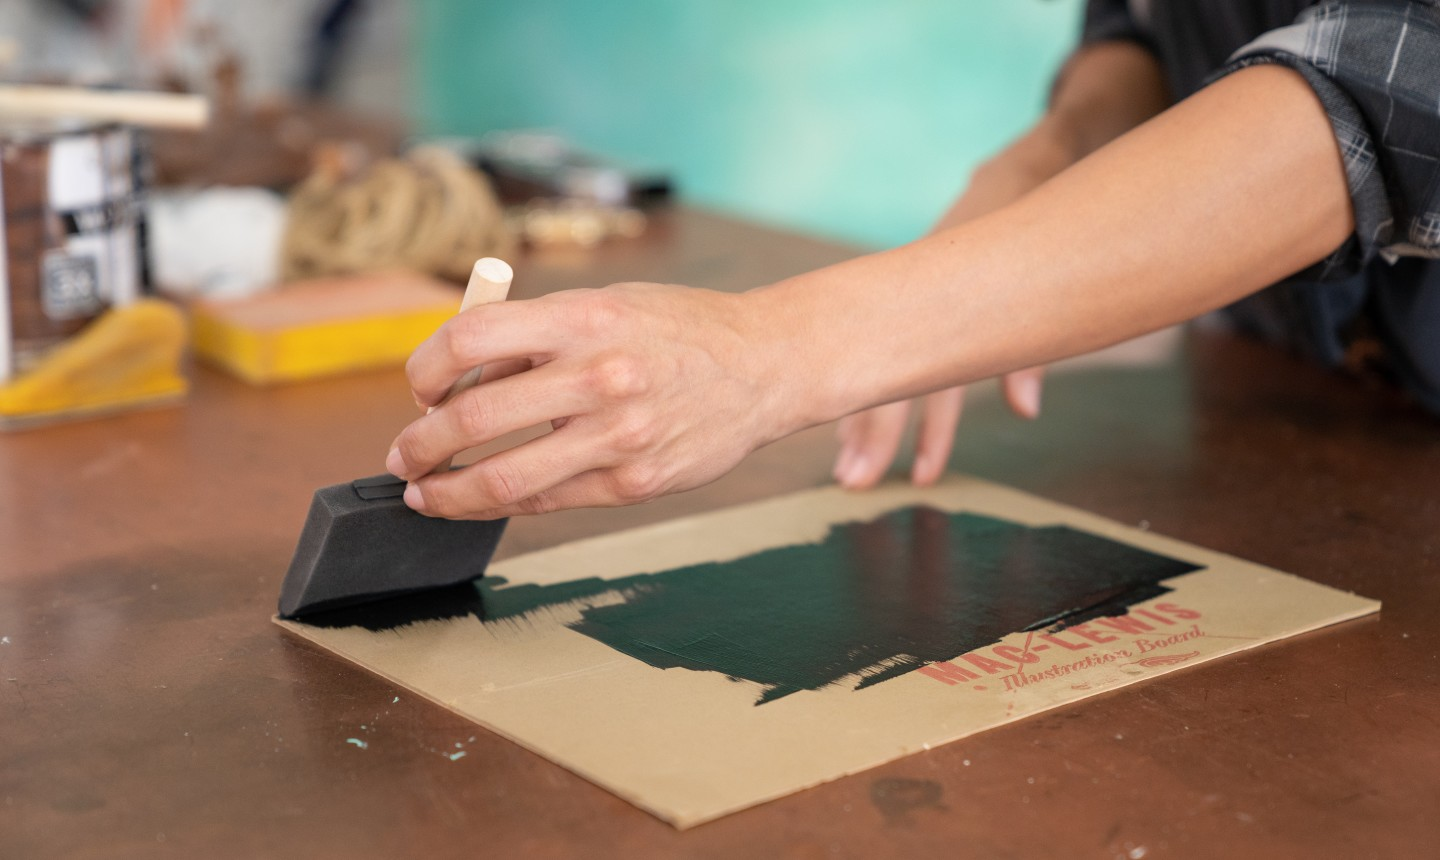 painting cardboard with chalk paint